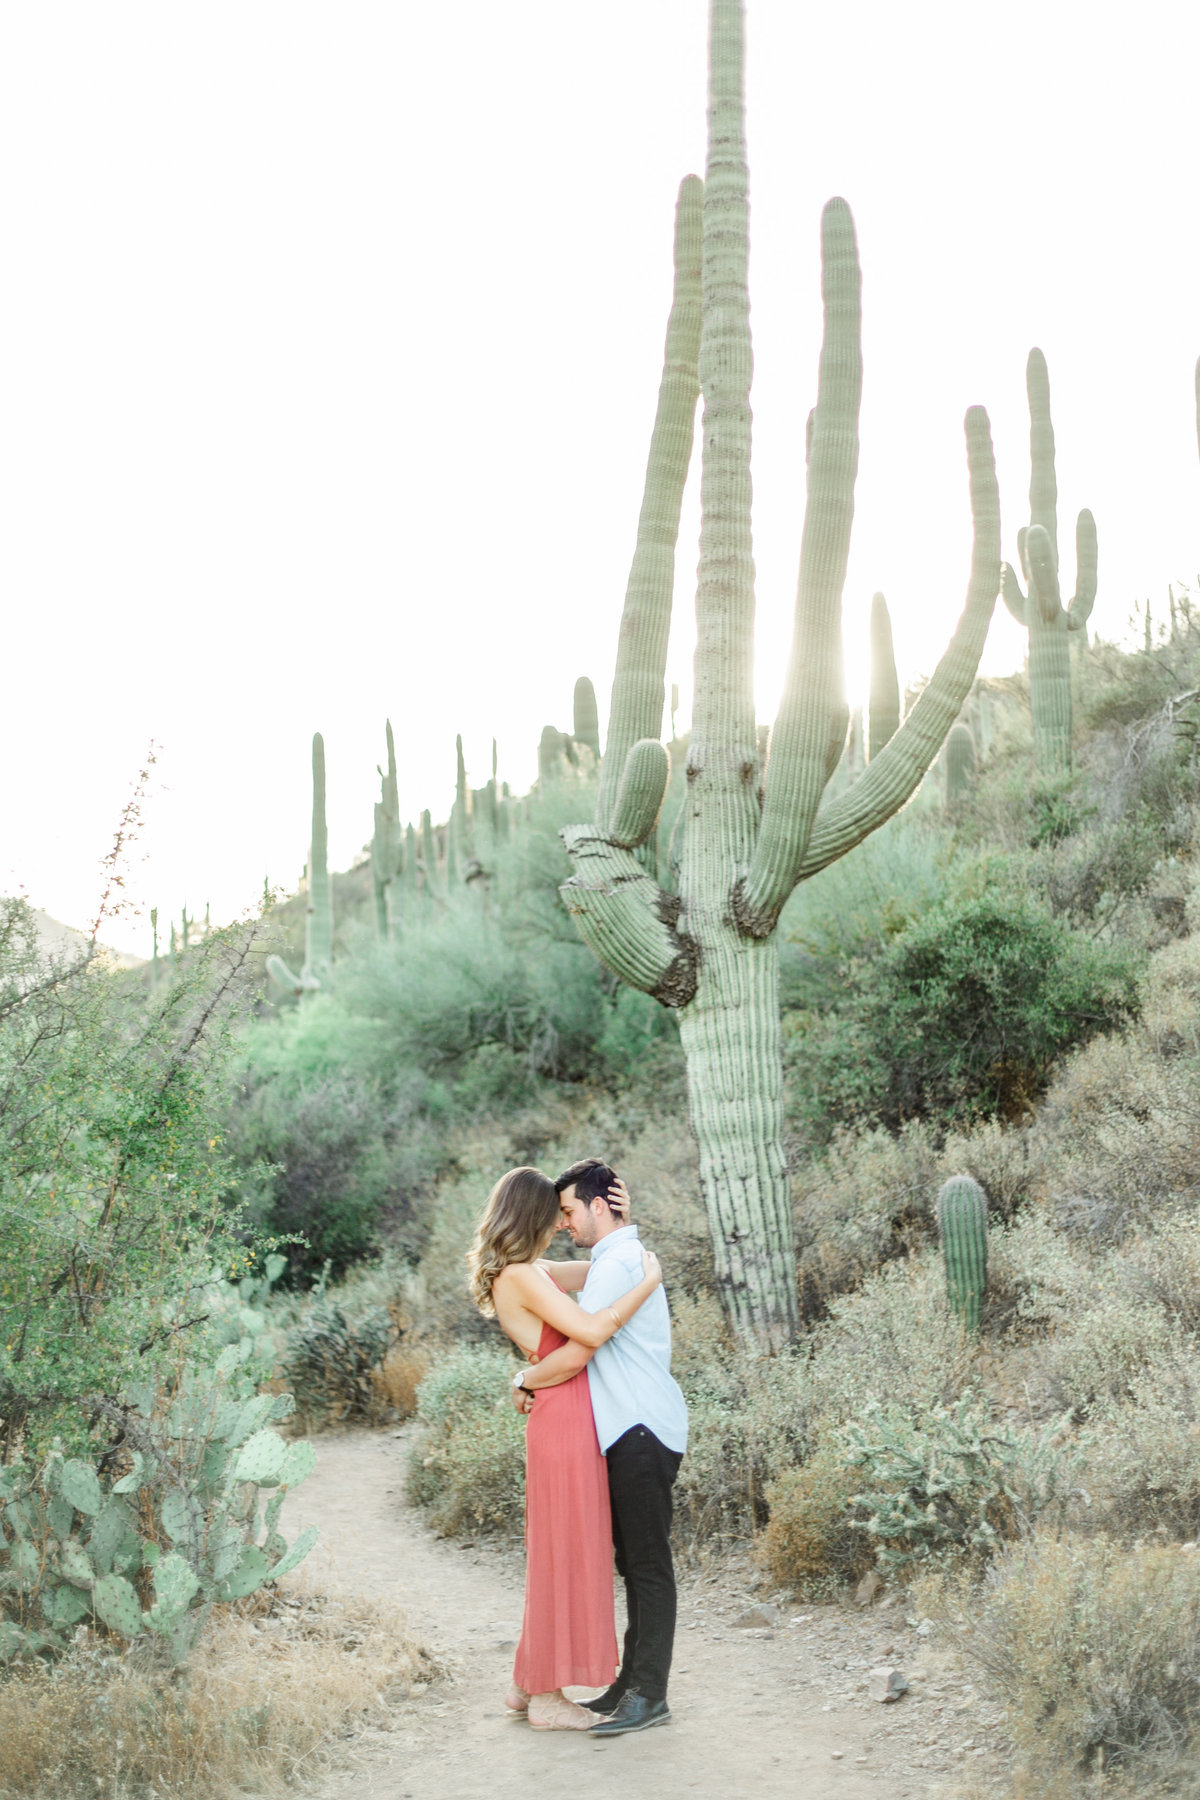 Karlie Colleen Photography - Arizona Desert Engagement - Brynne & Josh -110